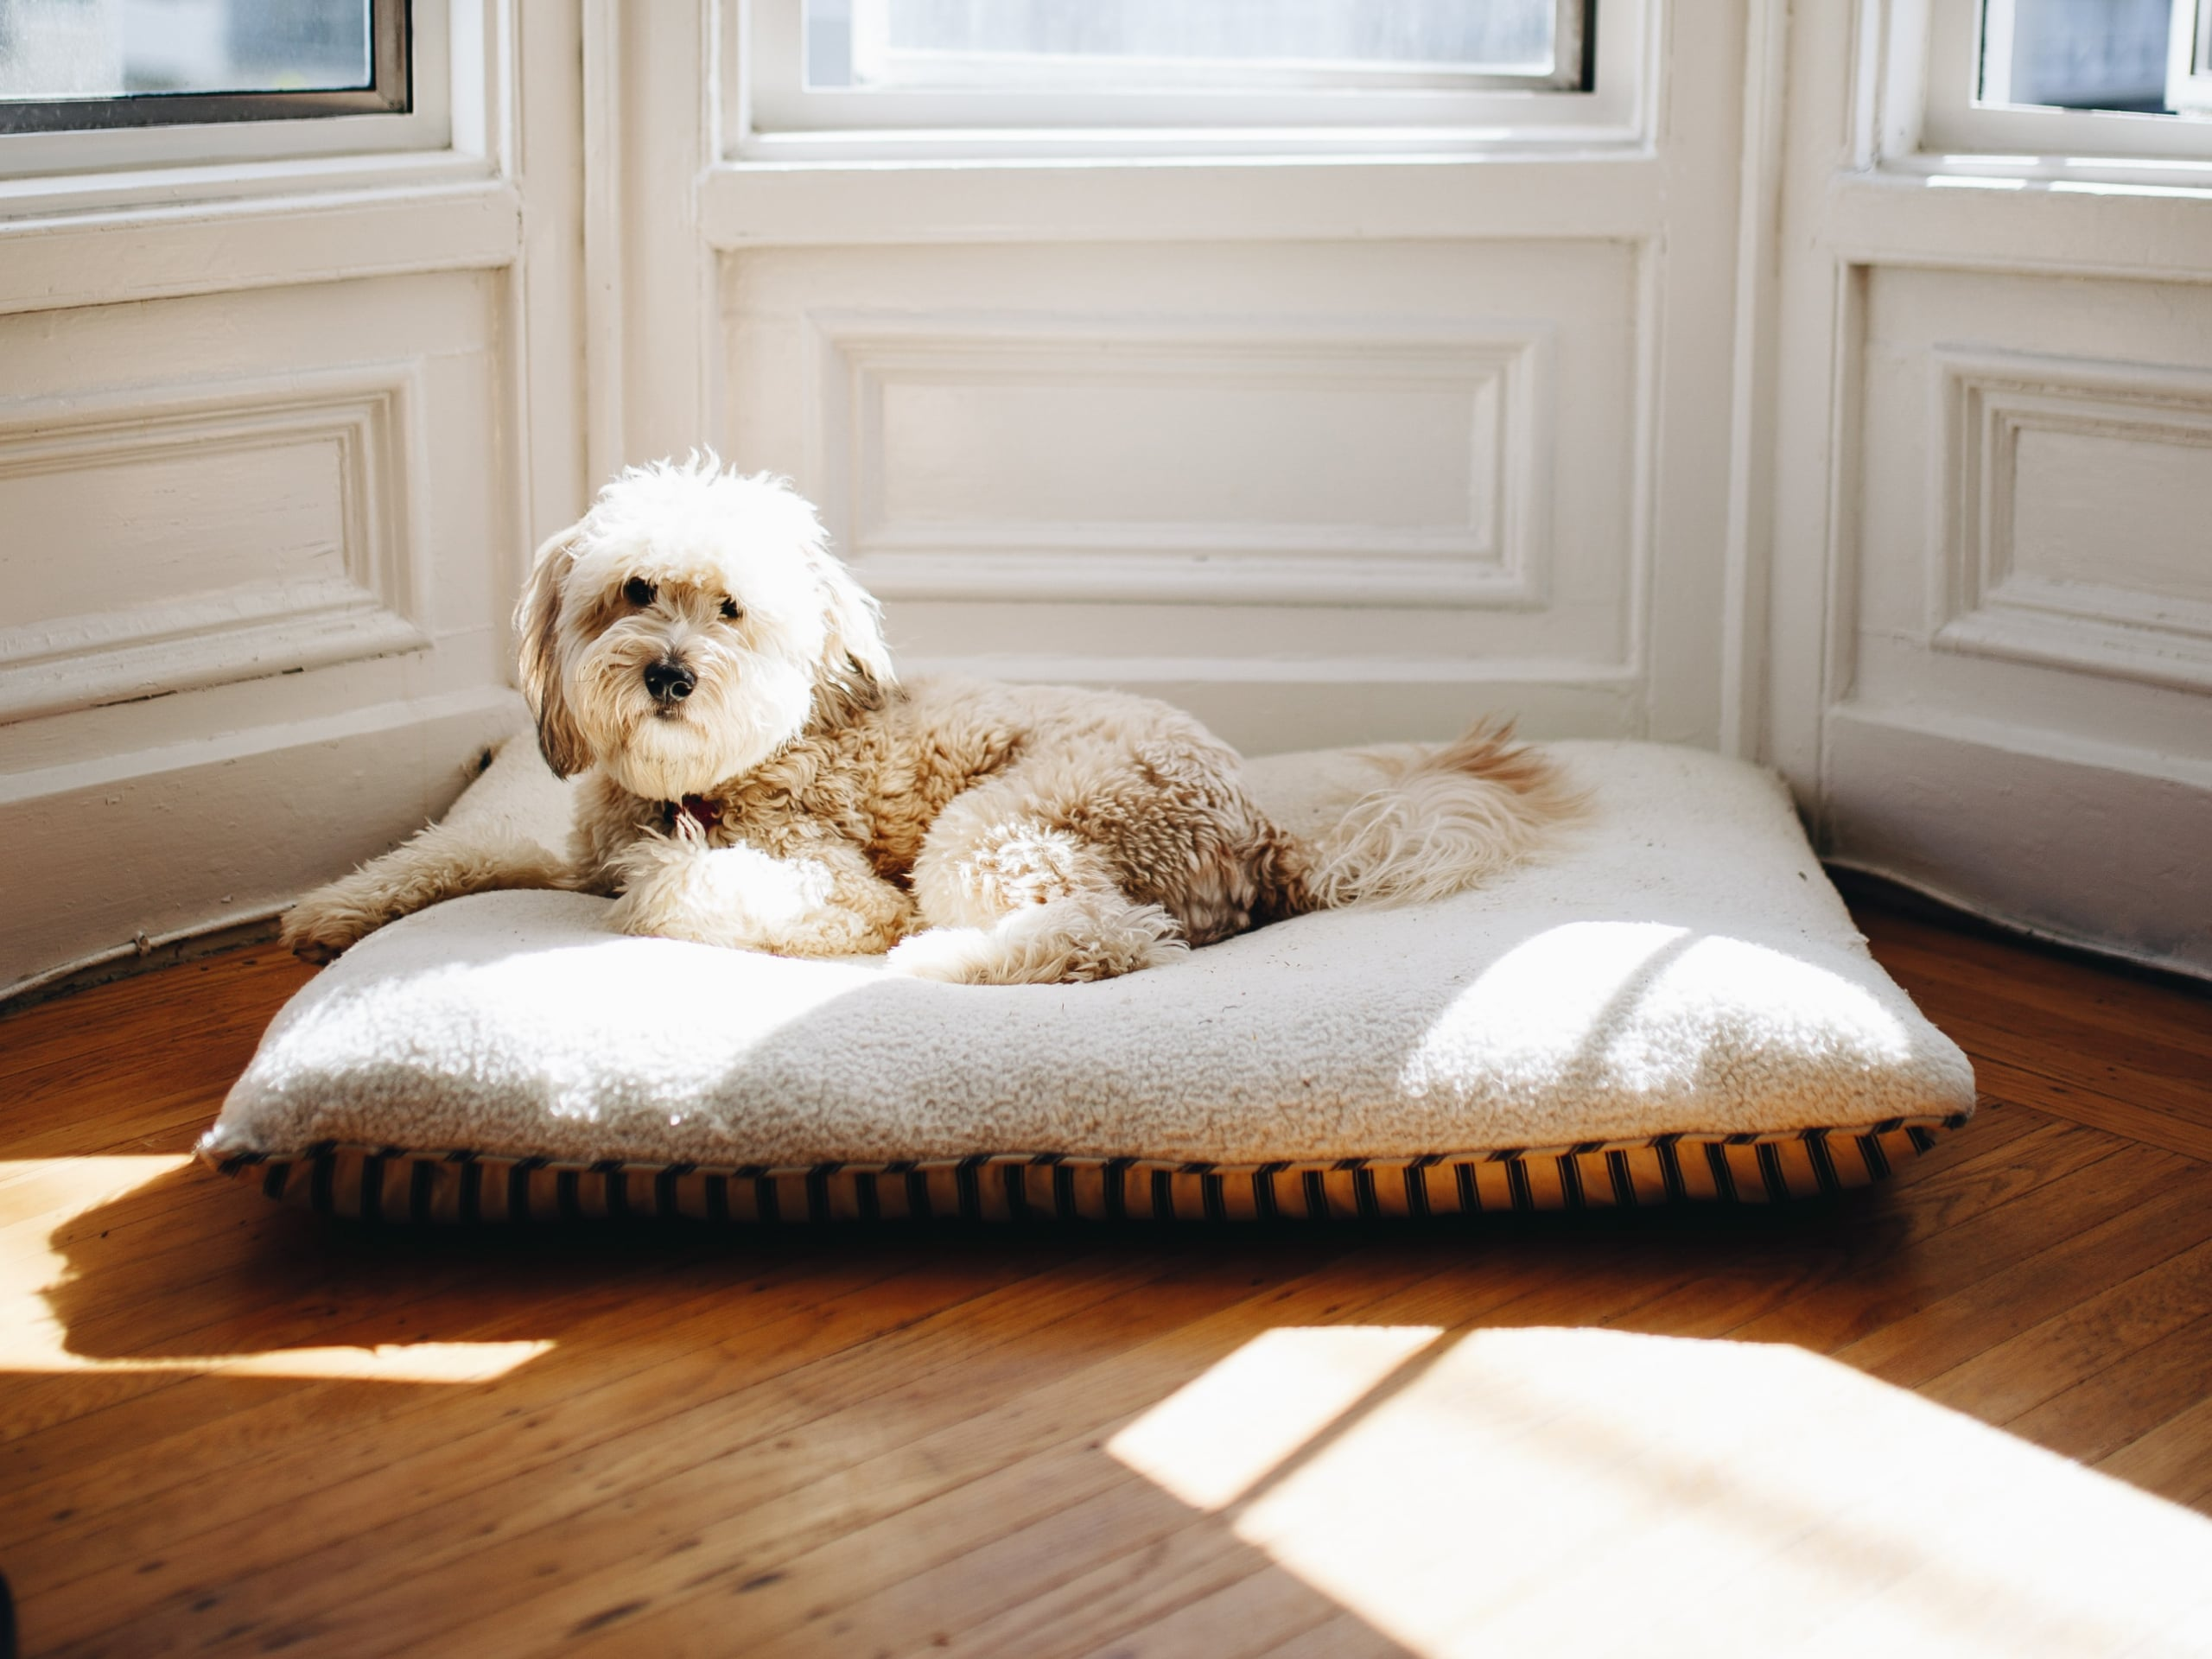 Fluffy golden doodle laying on a big dog bed in front of windows